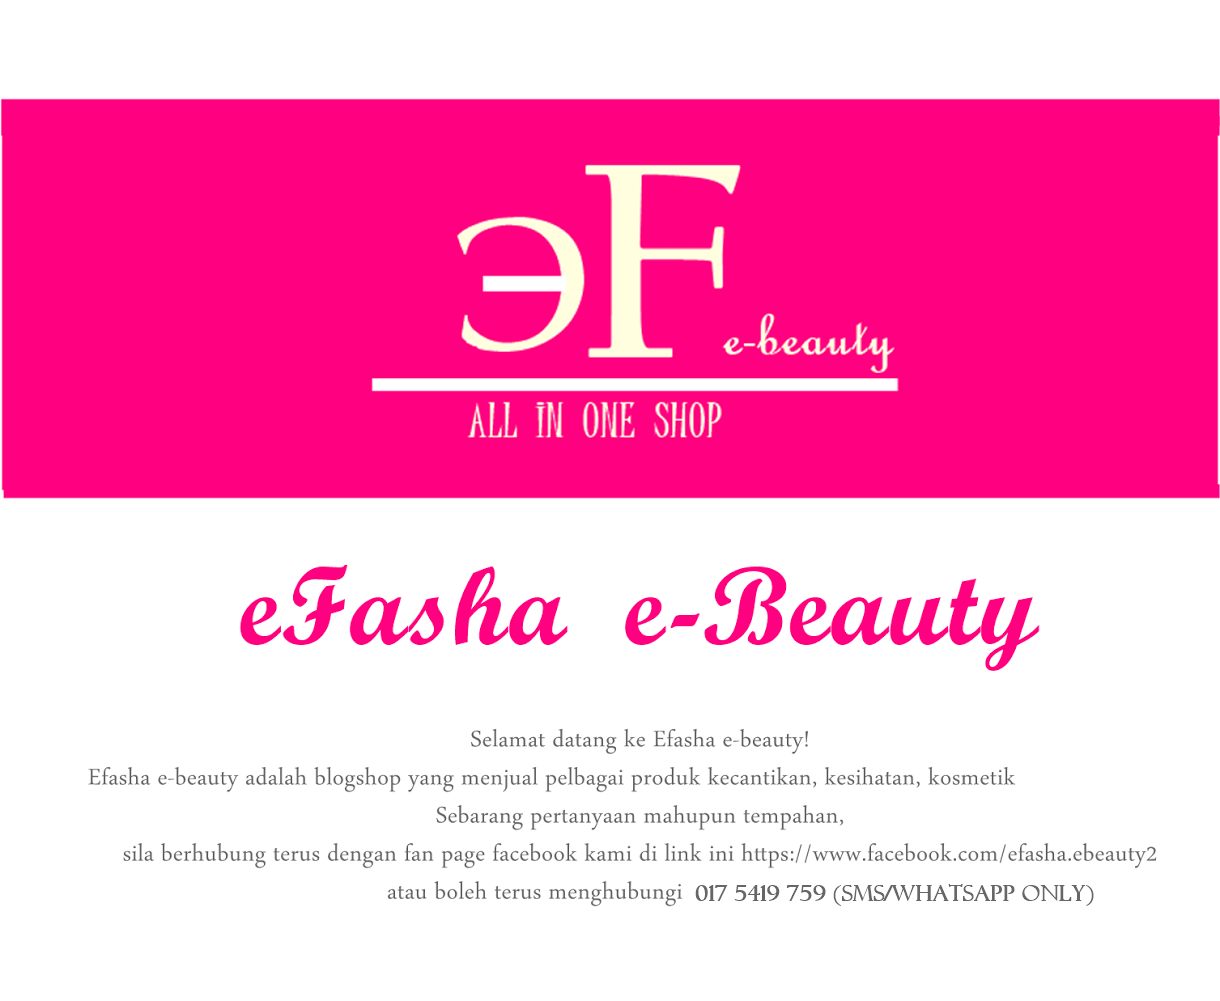 EFASHA E-BEAUTY